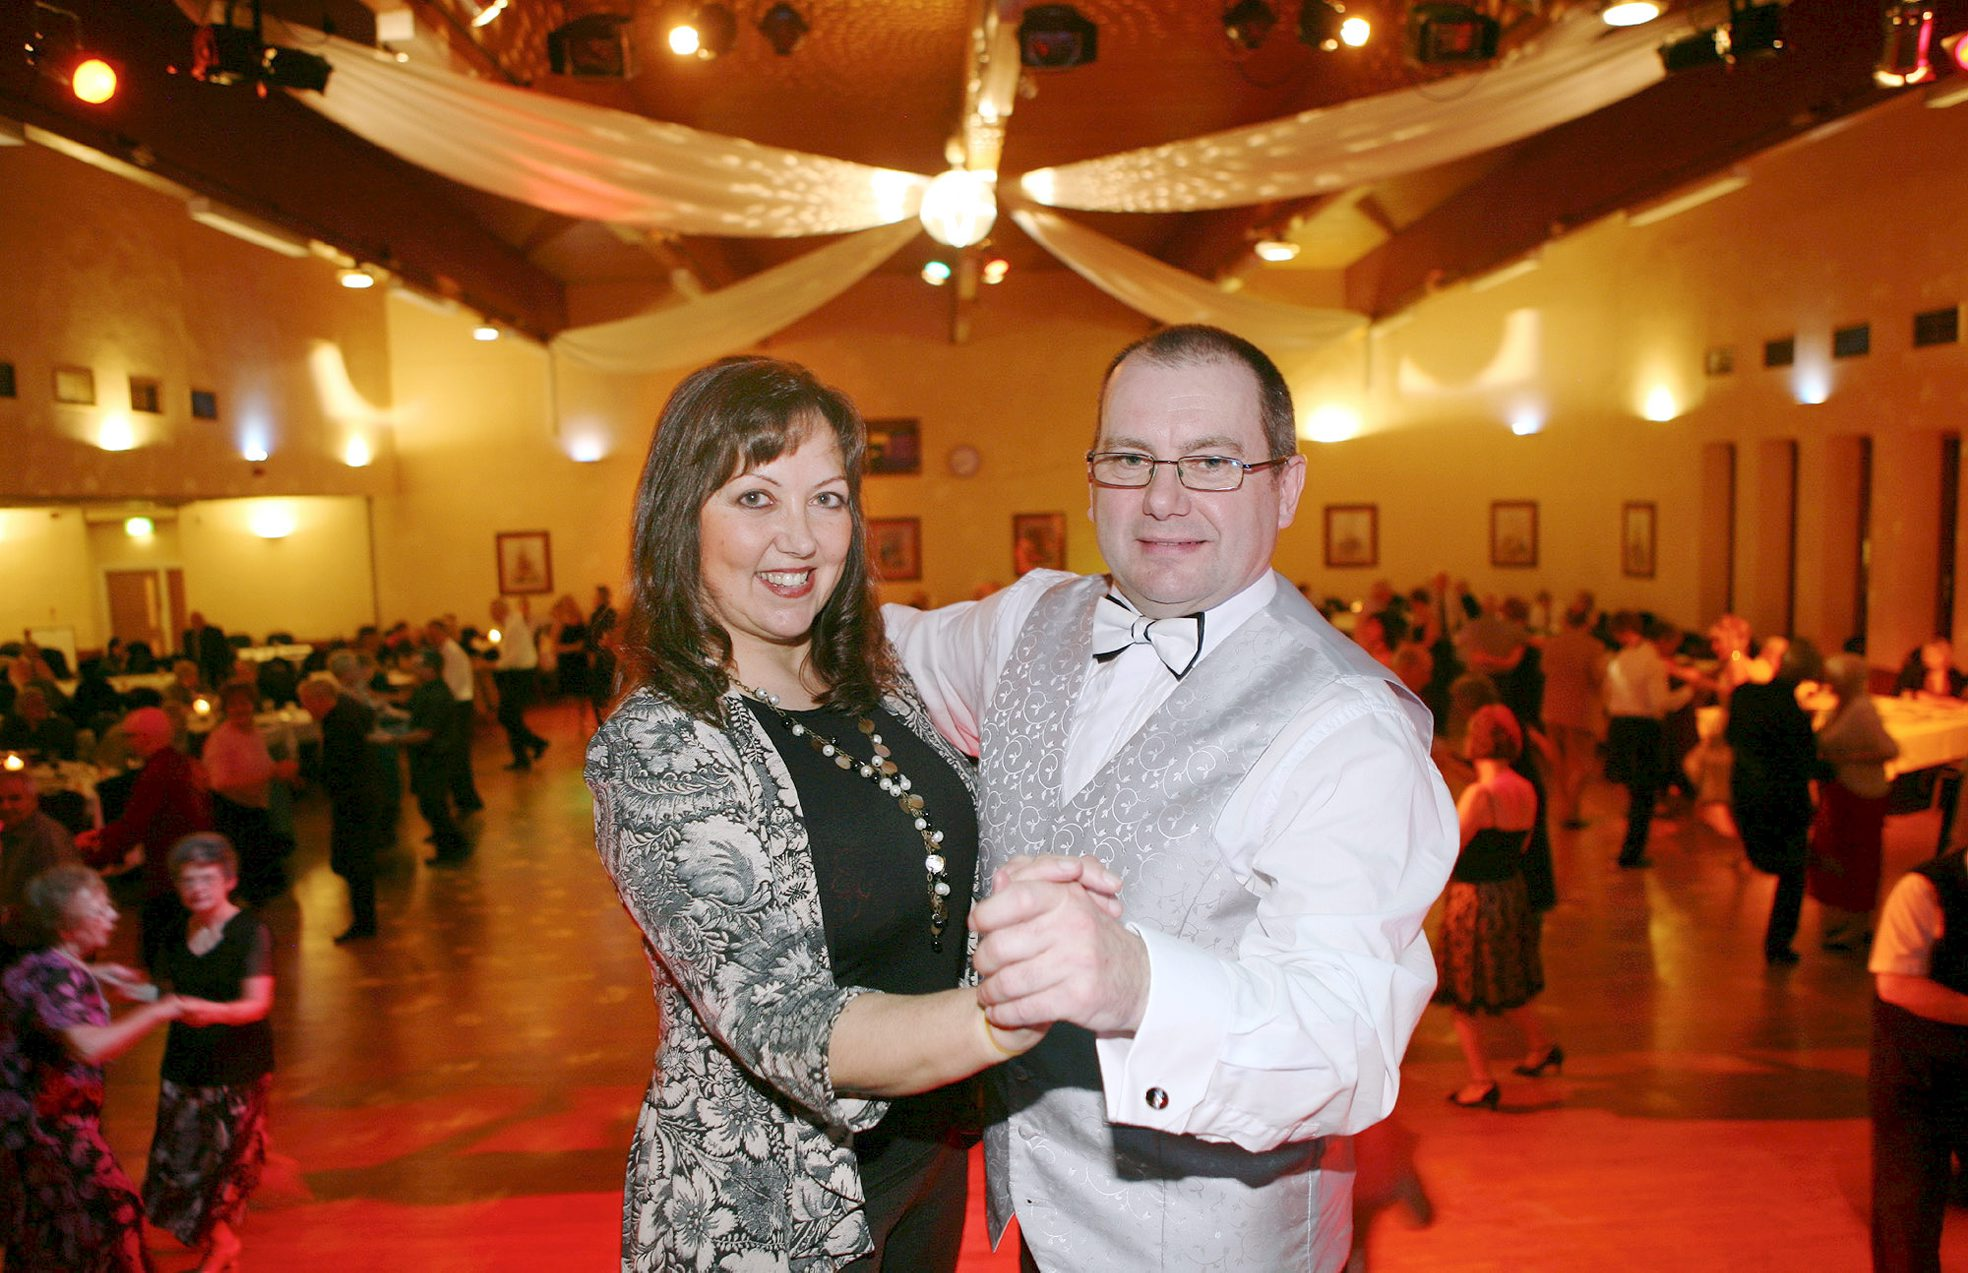 Having a ball: 'Golden era' of dancing makes comeback at Radcliffe Civic Suite